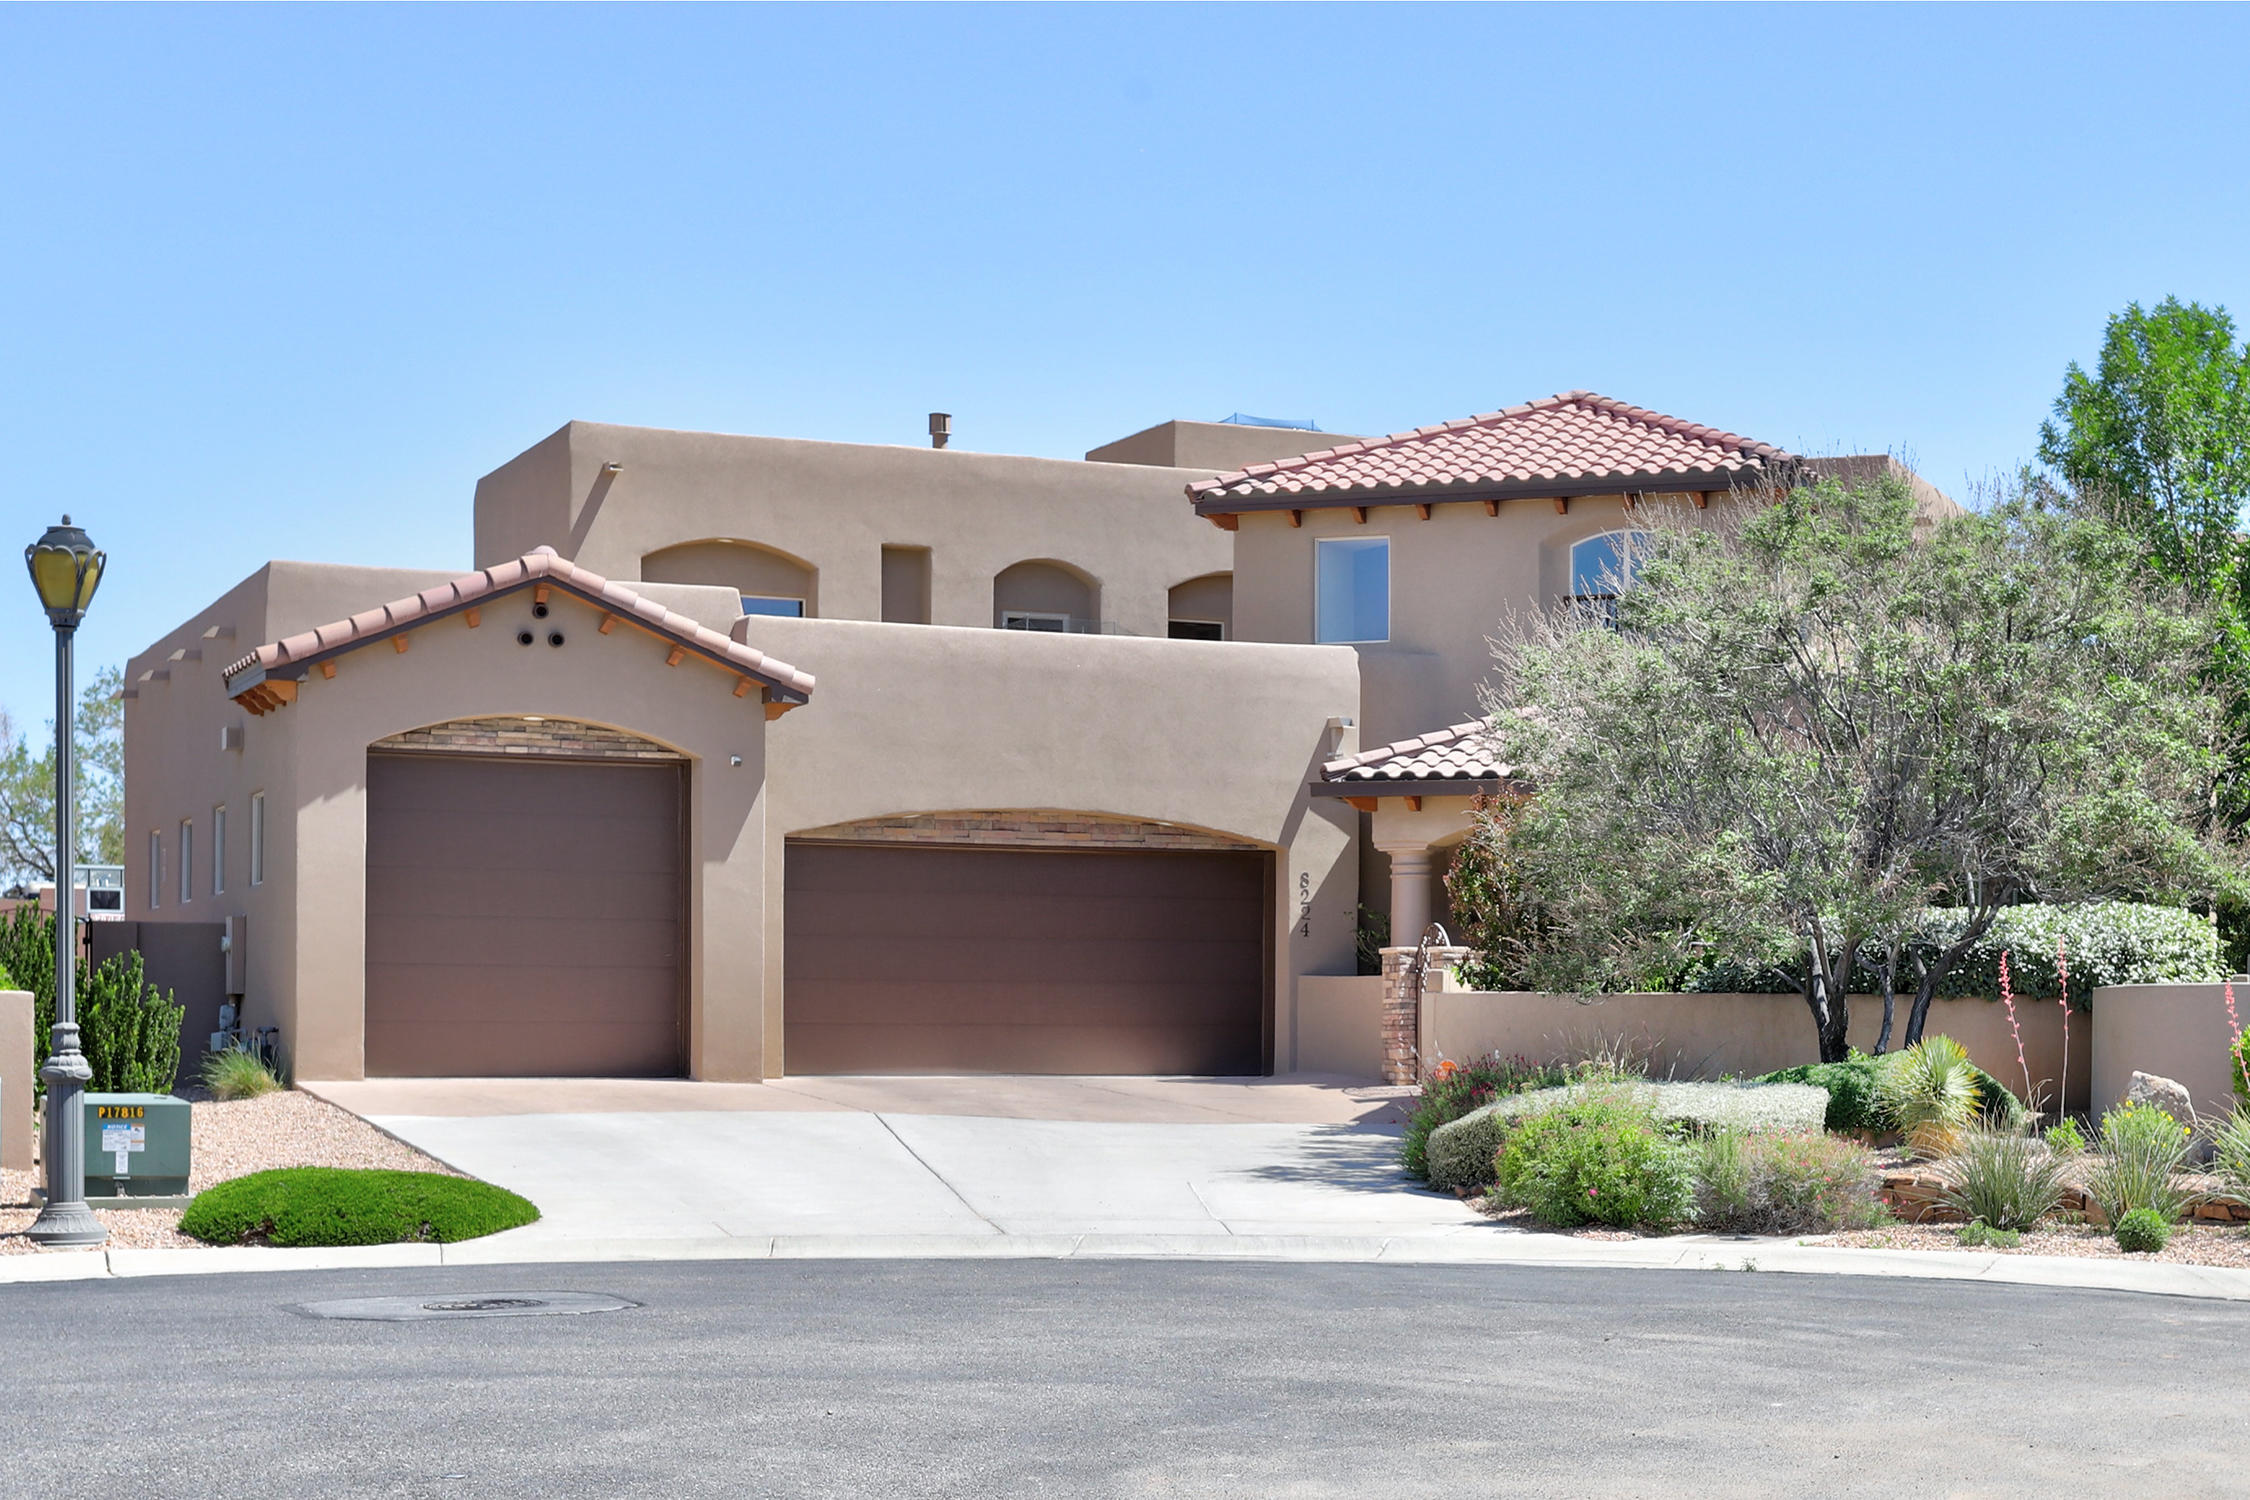 Stunning custom home in a gated community on a cul-de-sac in exclusive NE enclave!  Gorgeous outdoor spaces replete with expansive covered patio, in-ground pool & spa and views of the Sandias! Spacious open floorplan is graced by exquisite finishes. Radiant heat + gas CFA  & Refrigerated air for year round comfort! Arched oversized wood door leads to grand foyer with 2-story ceiling, custom tile, spiral staircase and Juliet balcony.  Raised ceilings and open concept make this spectacular dream kitchen feel airy and accessible with 2 convection ovens + microwave/oven combo, 5-burner gas range, KitchenAid side by side refrigerator/freezer, deluxe pantry, a large island and a  large scale breakfast area.  The kitchen boasts a second pantry for wholesale shoppers. .   (more.